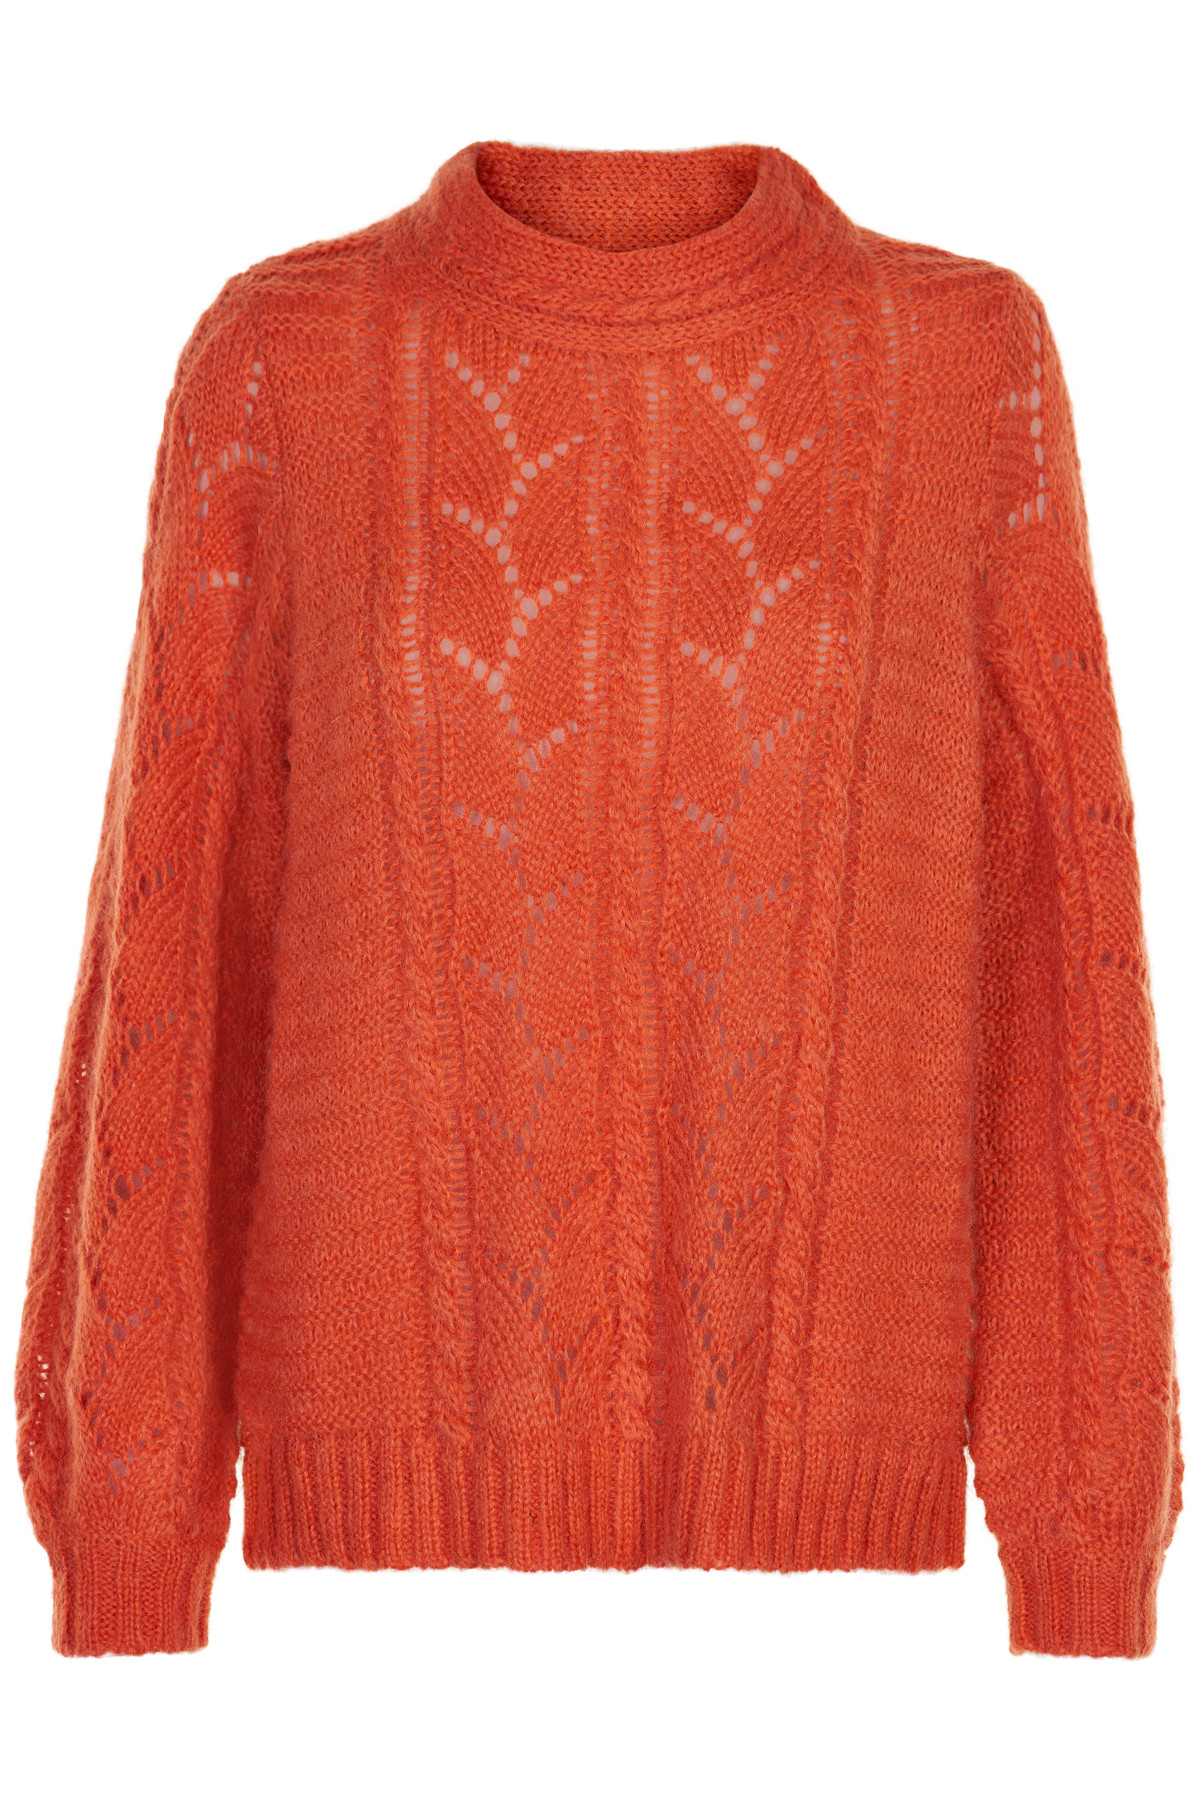 Image of   NOA NOA PULLOVER 1-9877-1 00883 (Red, M)